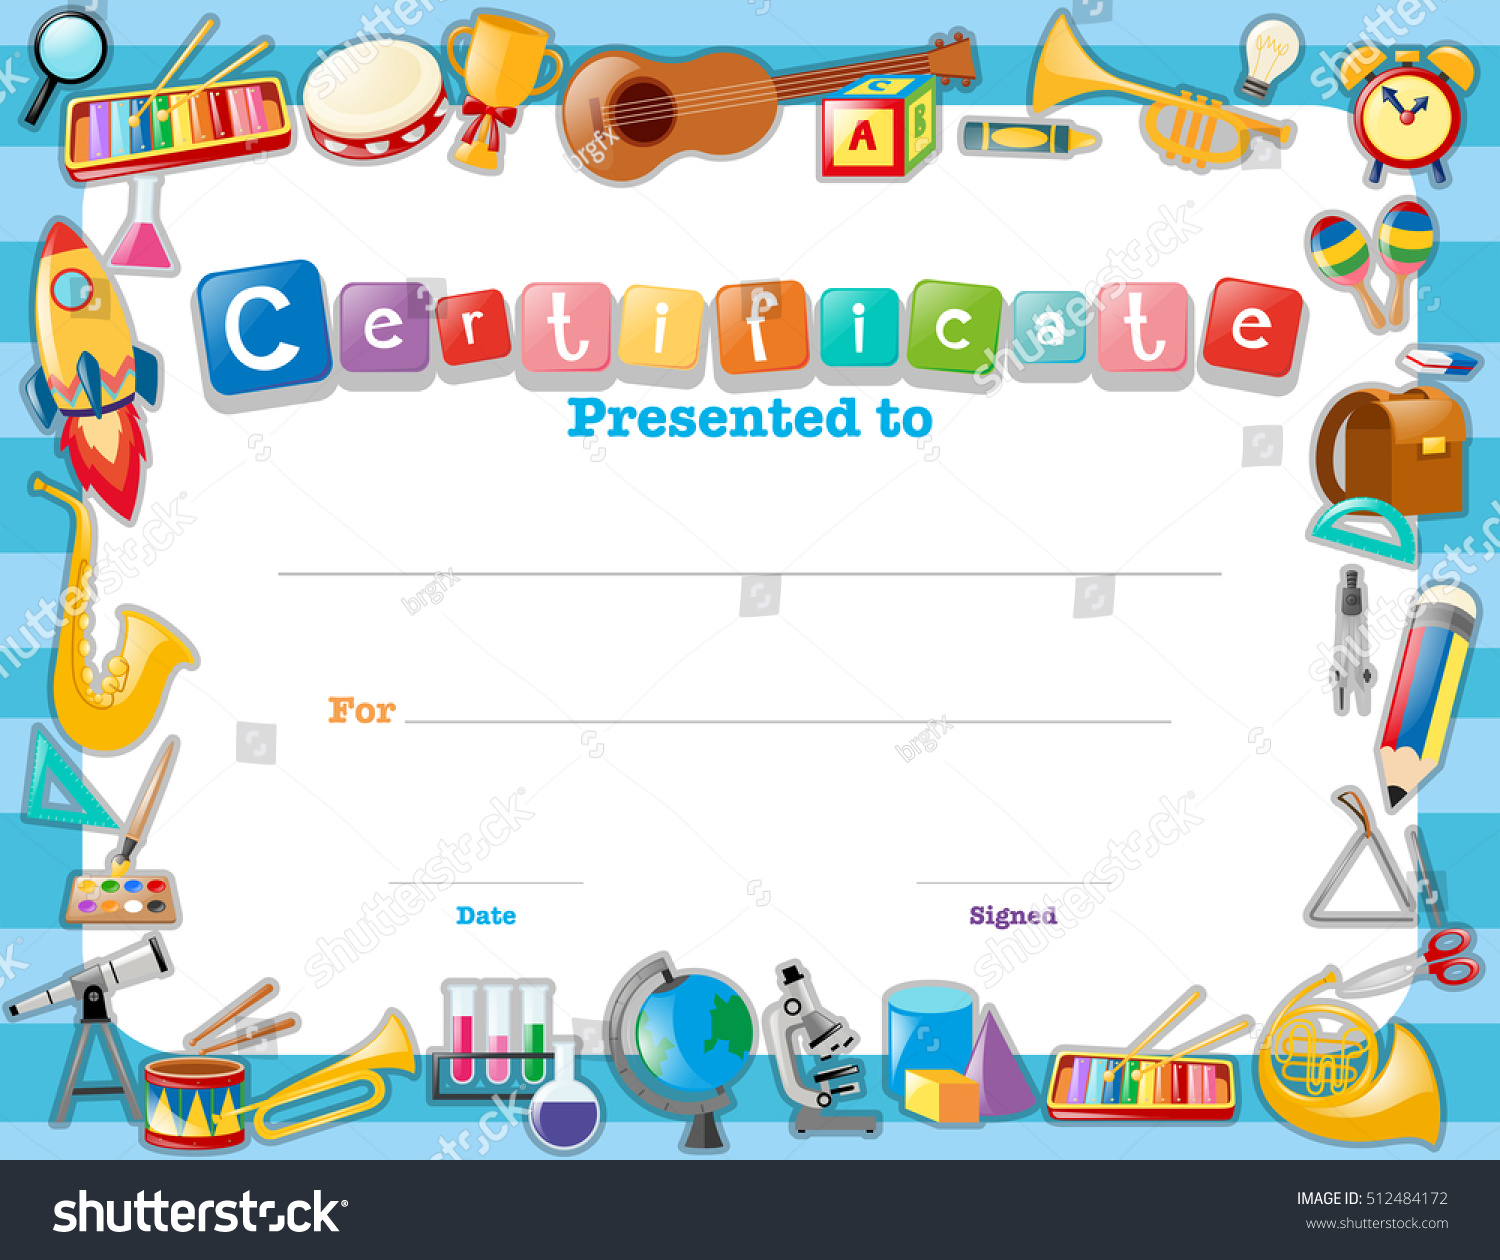 Business certificate templates table tennis certificates design business certificate templates tennis certificates design stock vector certificate template with school items illustration 512484172 business yadclub Images